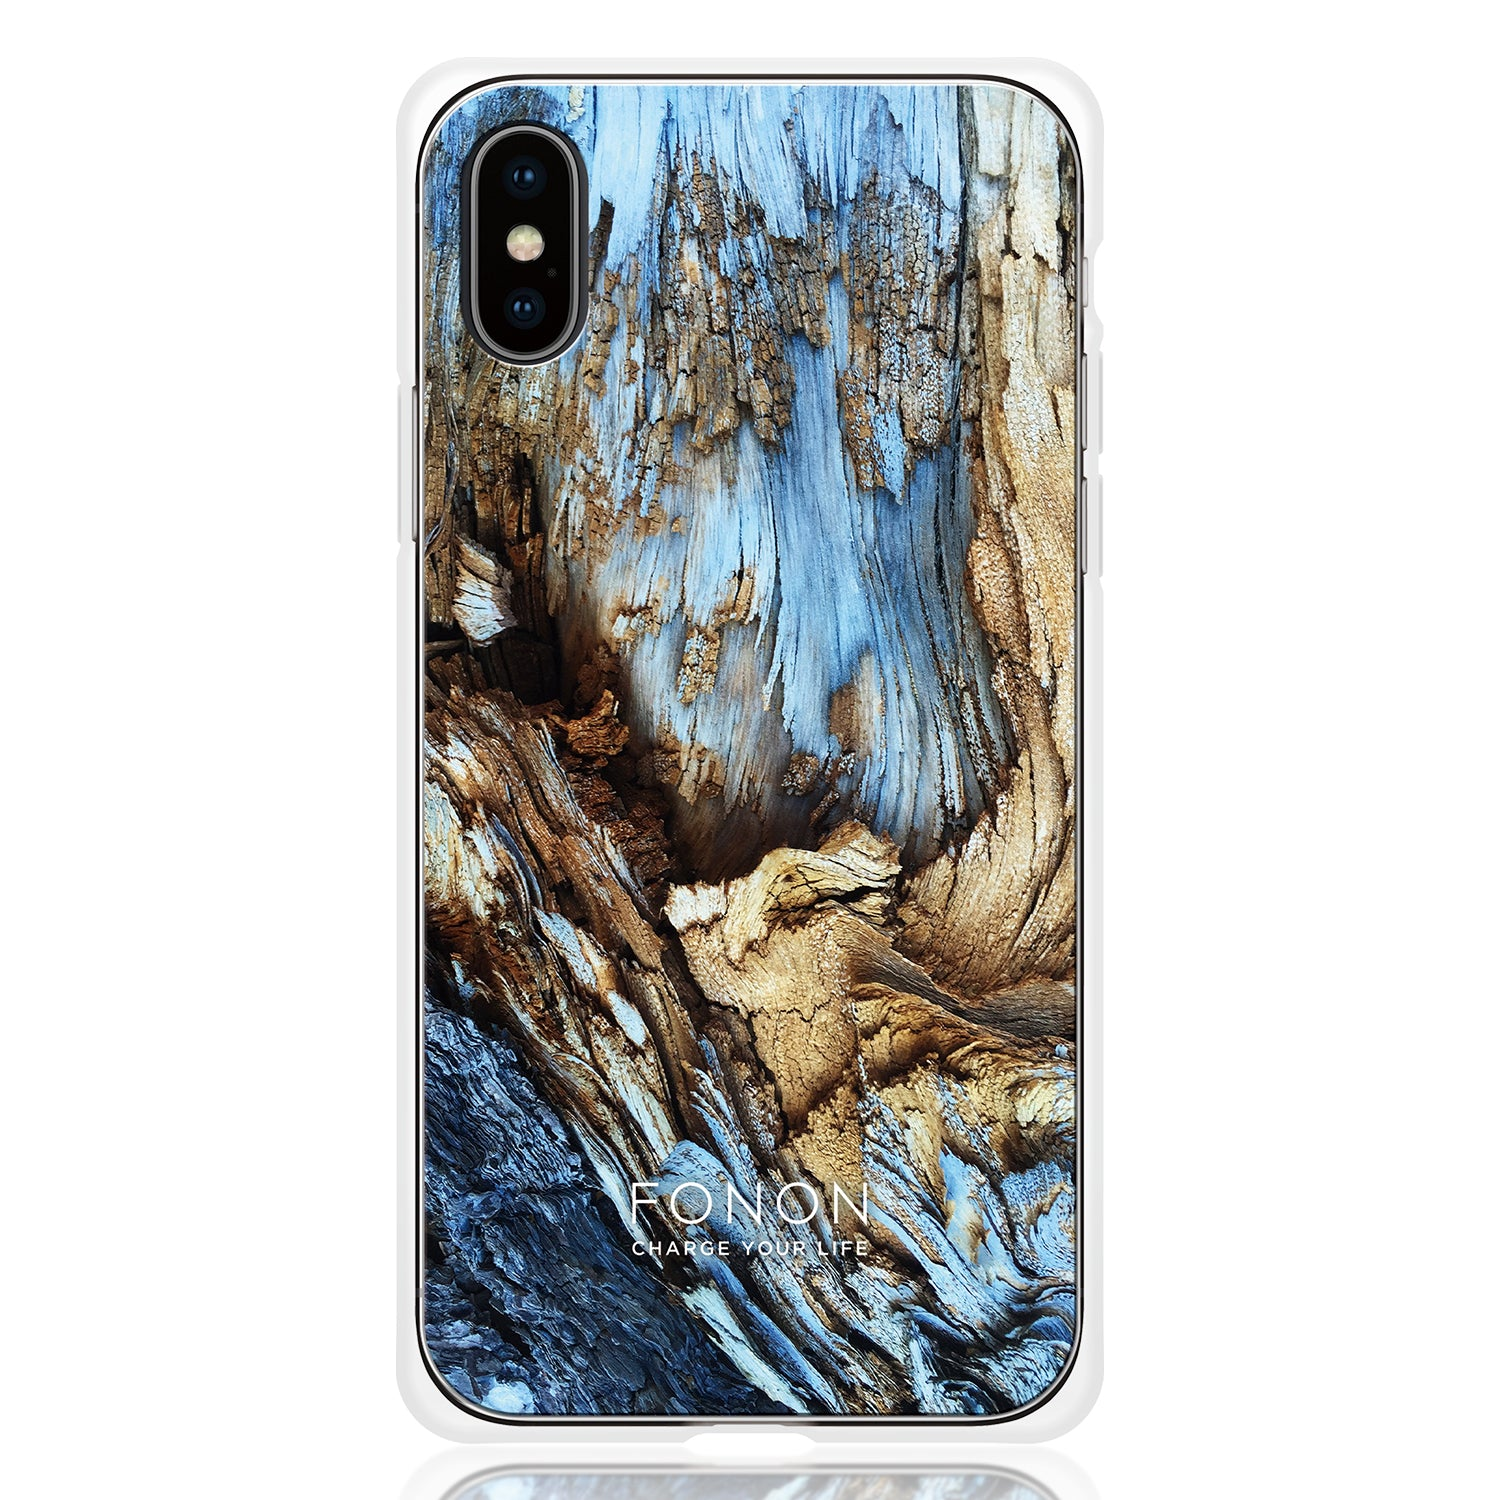 DAMPER GLASS iPhone CASE - STONE PLANET - Lava